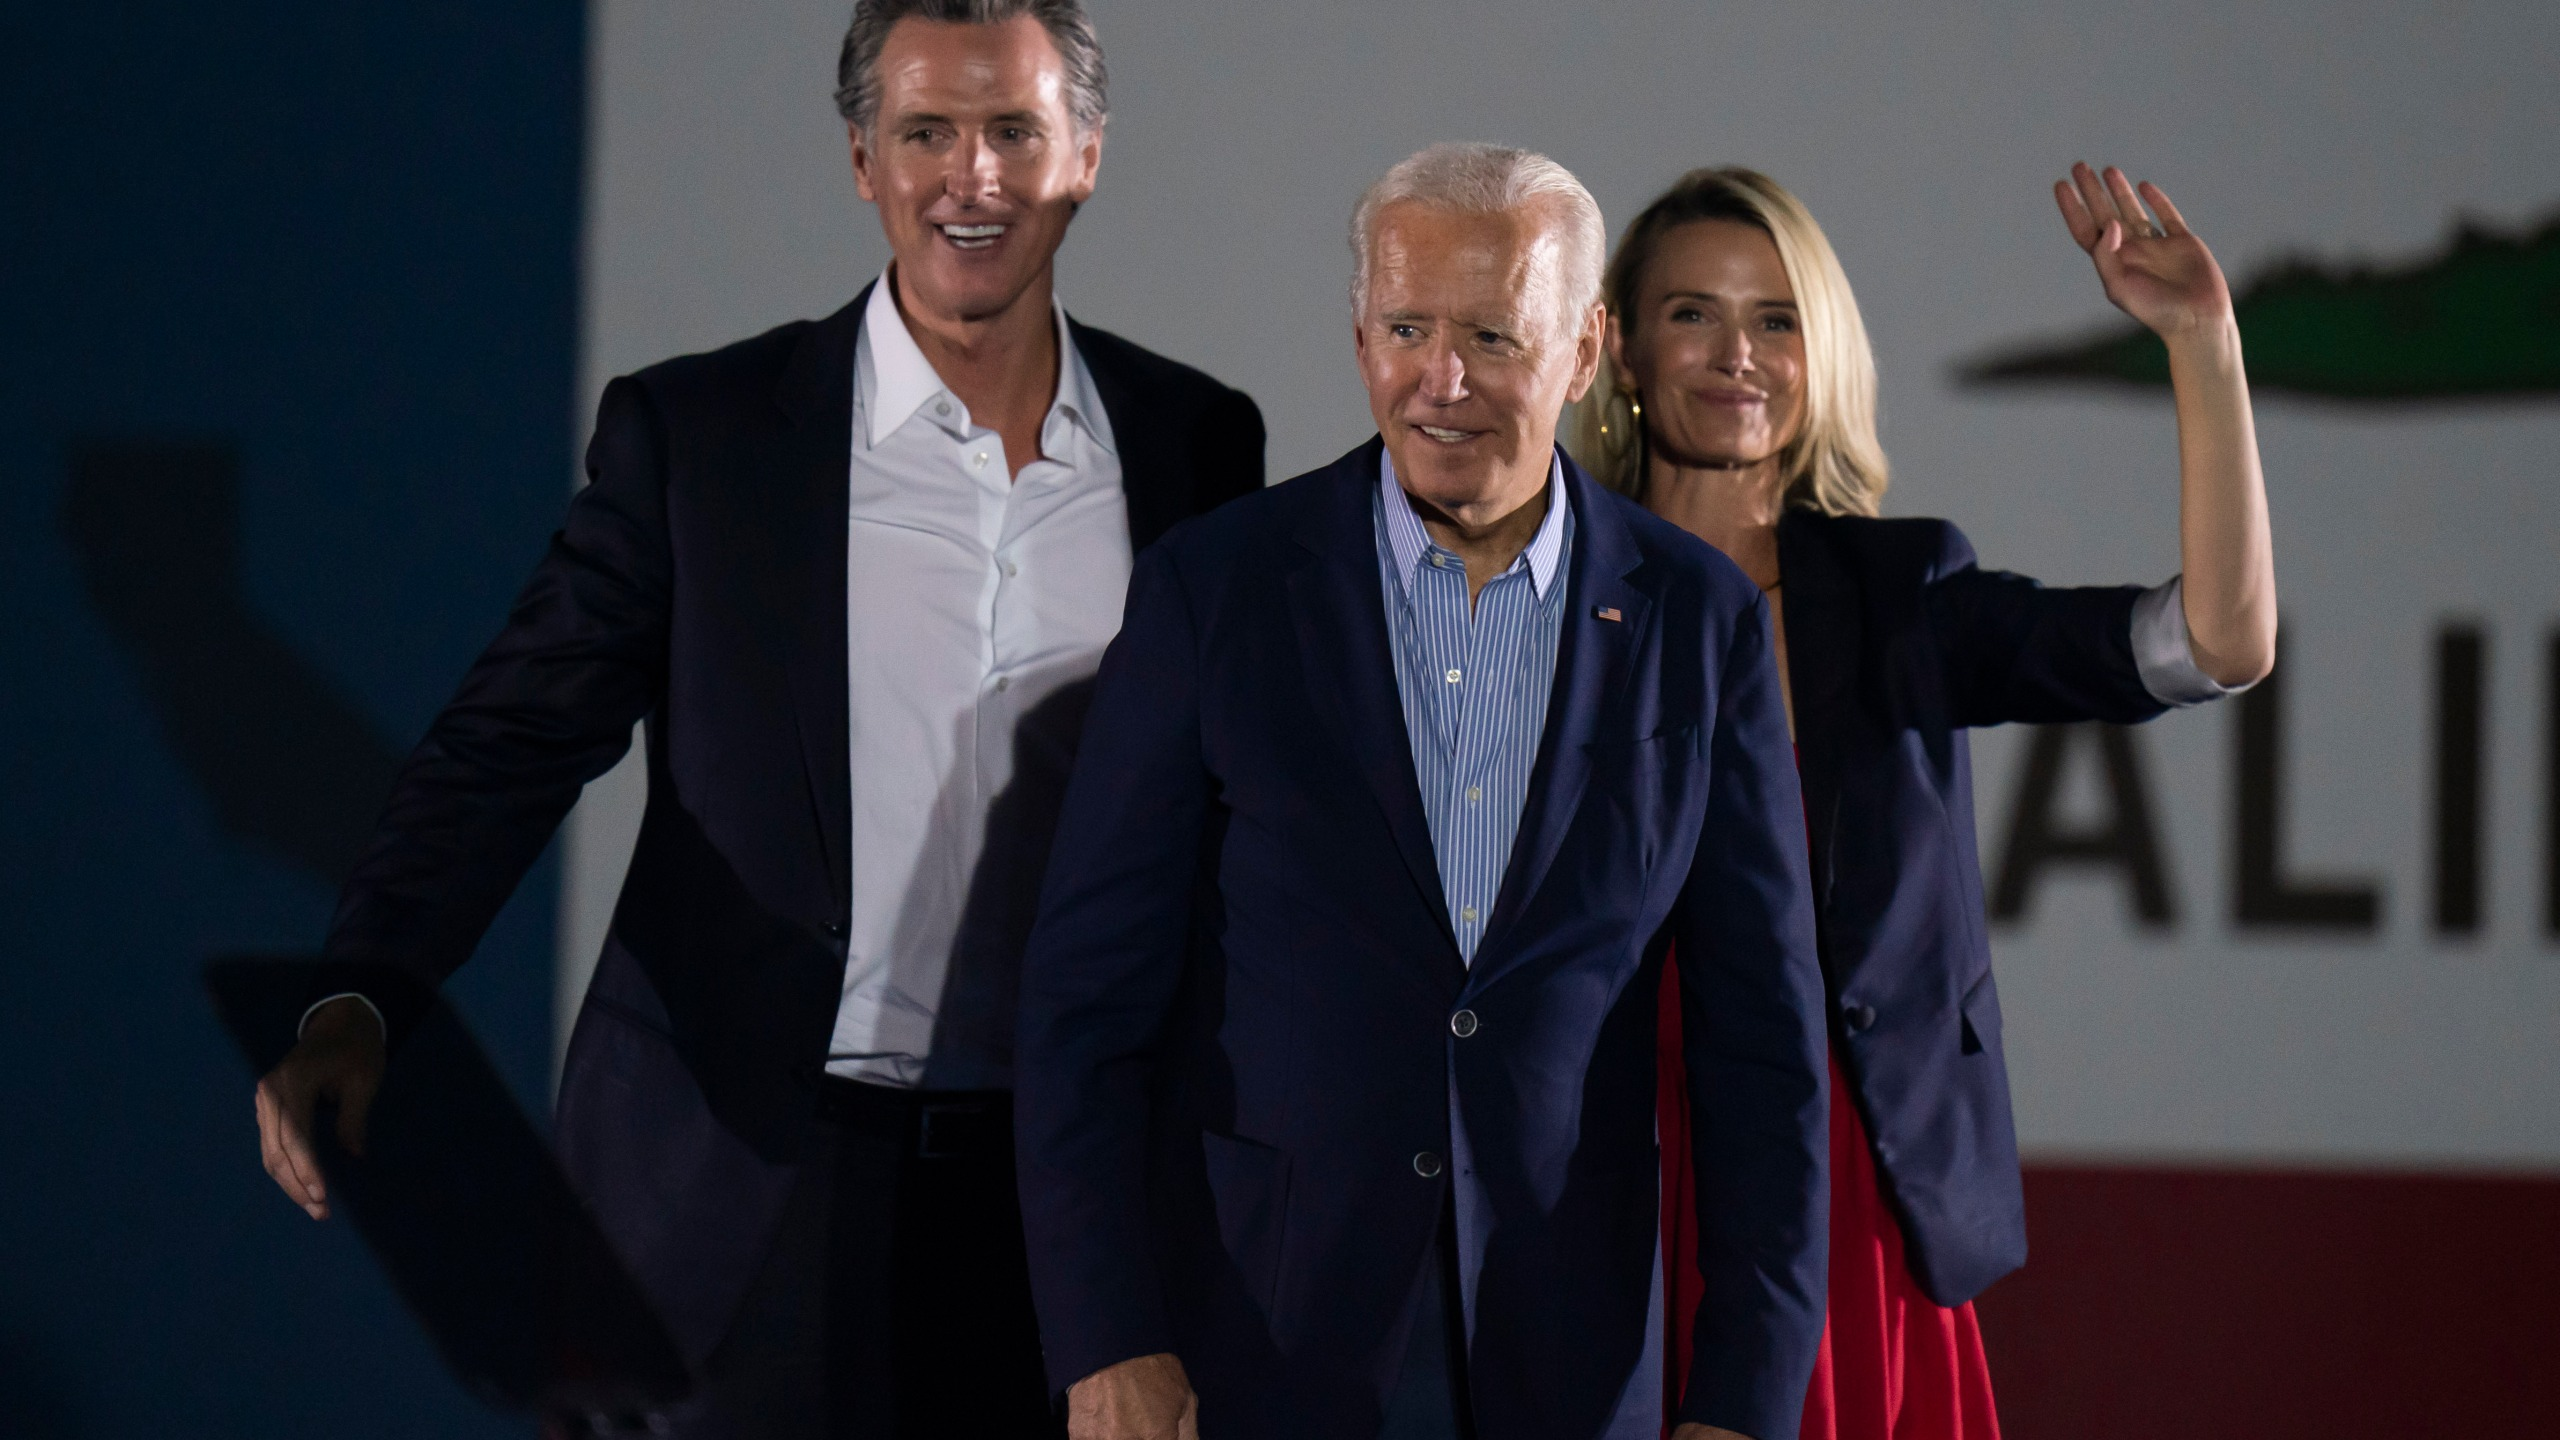 In this Sept. 13, 2021, file photo President Joe Biden, center, smiles to the crowd as he is flanked by California Gov. Gavin Newsom and Jennifer Siebel Newsom at a rally ahead of the California gubernatorial recall election in Long Beach, Calif. (AP Photo/Jae C. Hong, File)